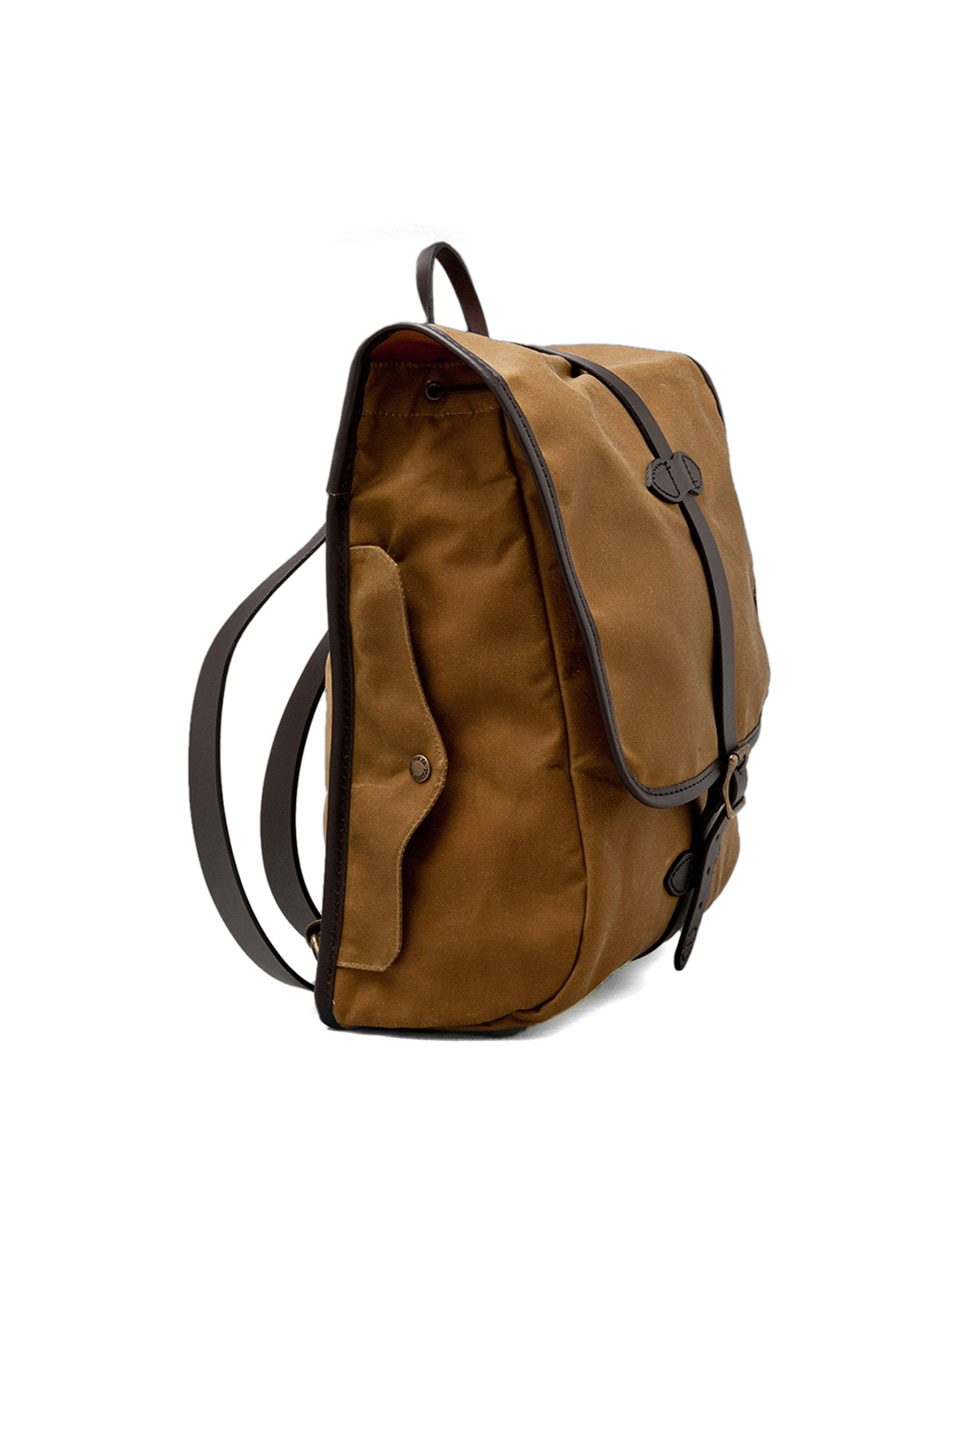 Filson Tin Cloth Backpack in Tan